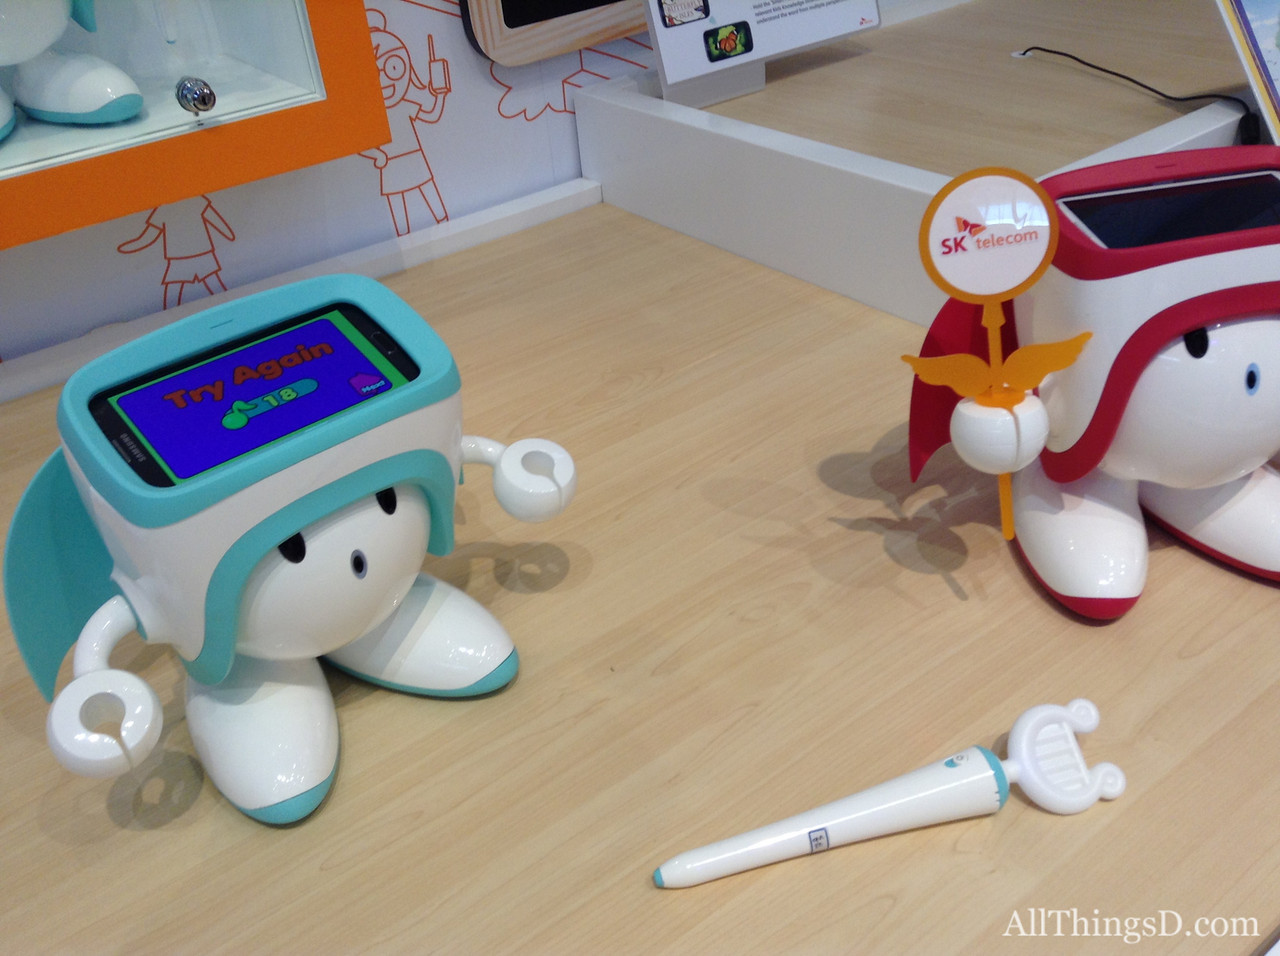 SK Telecom's rival robot doesn't include a built-in screen or connectivity, instead using any Android phone for both a display and wireless hookup.